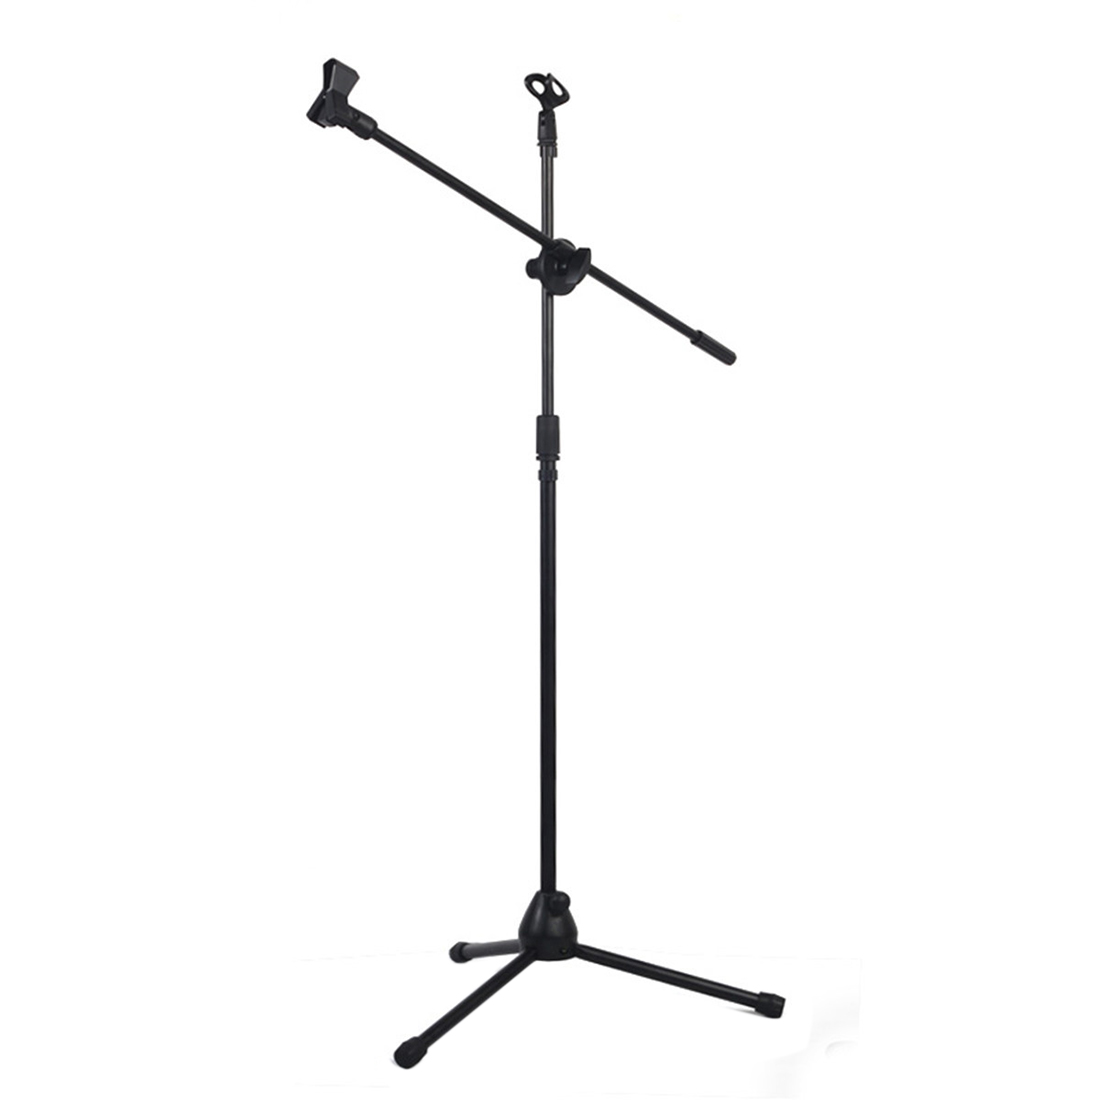 New Professional Swing Boom Microphone Holder Floor Microphone Stand Holder